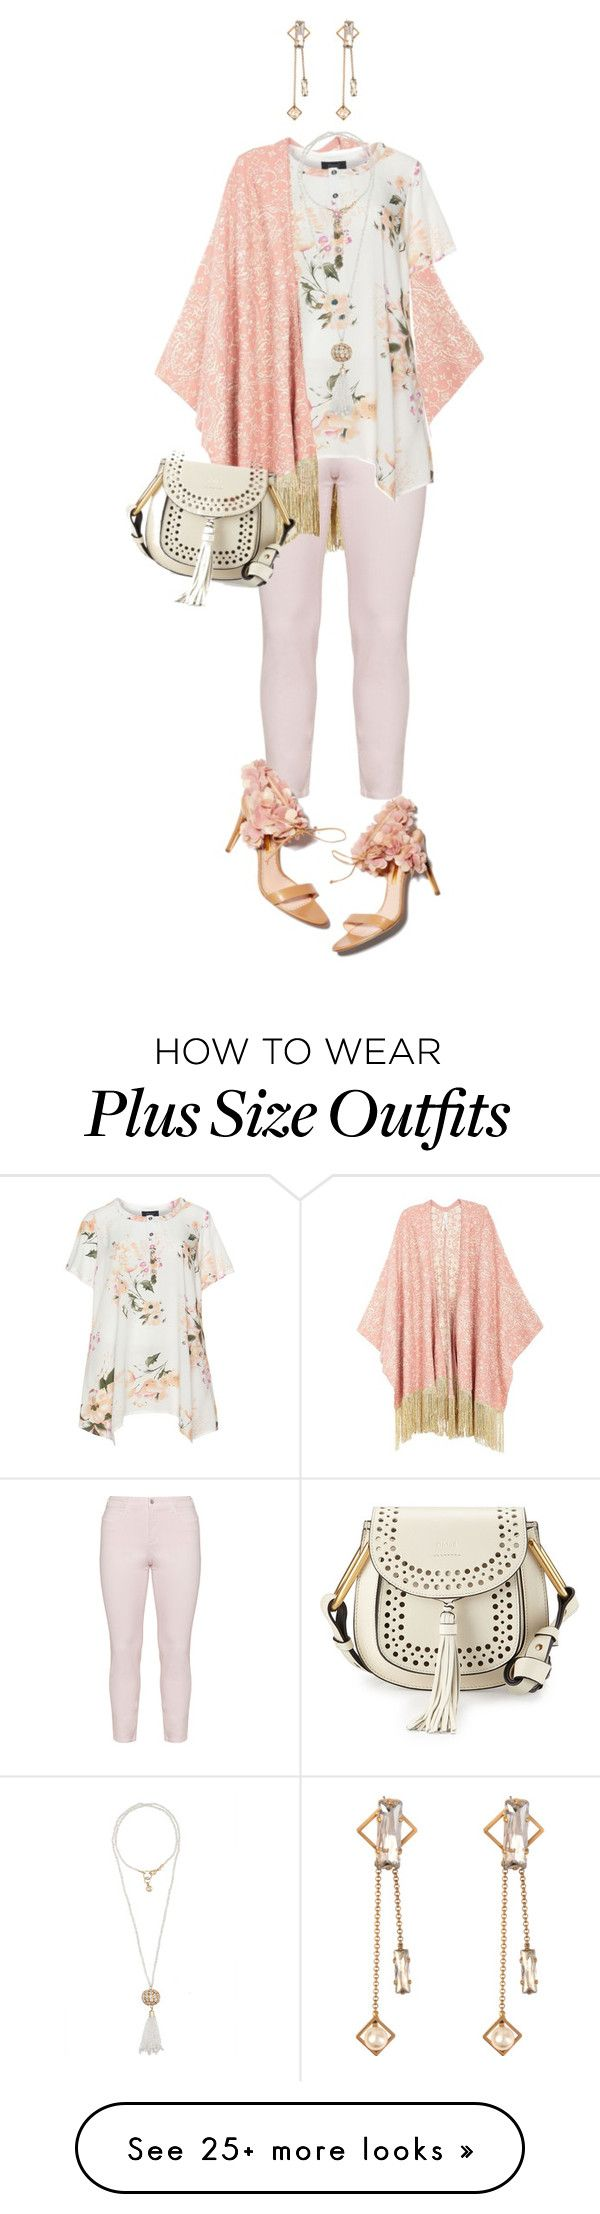 """""""Perfect Pink: Plus Size Spring"""" by jenmontreal on Polyvore featuring Melissa McCarthy Seven7, NYDJ, Zhenzi, Helene Zubeldia, Calypso St. Barth, Chloé, Rupert Sanderson and plus size clothing"""